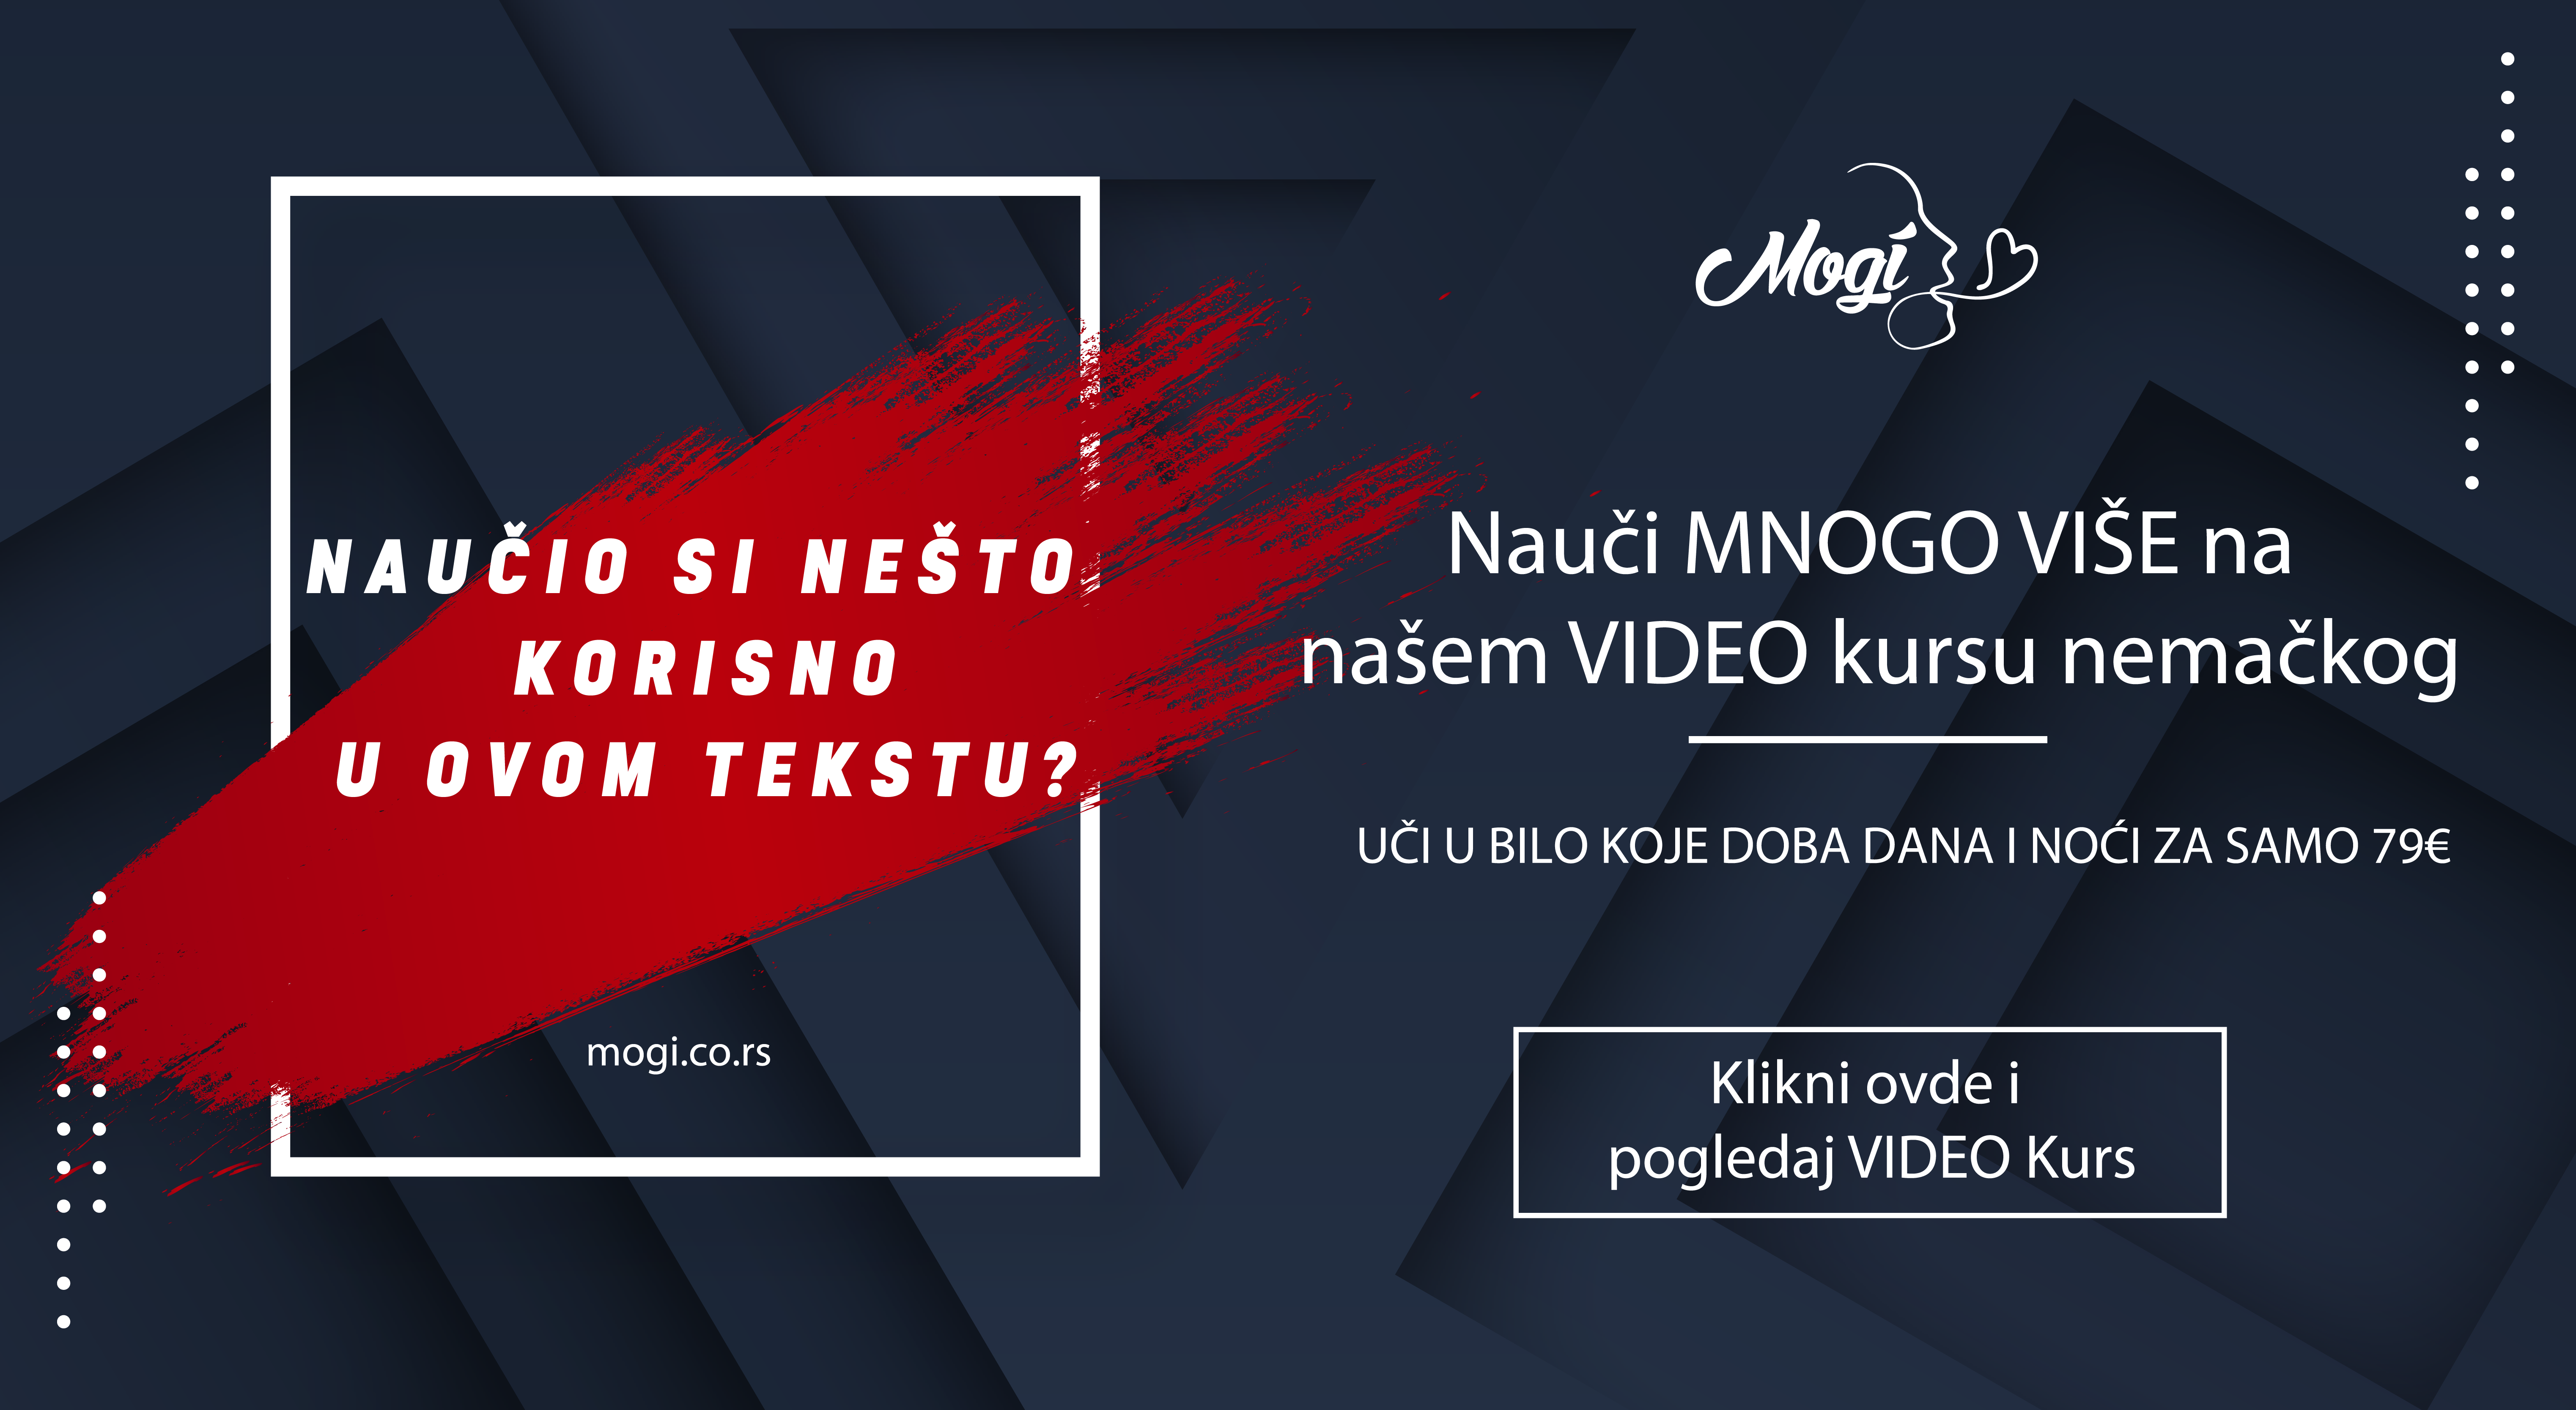 Online Kurs Nemackog Jezika Video